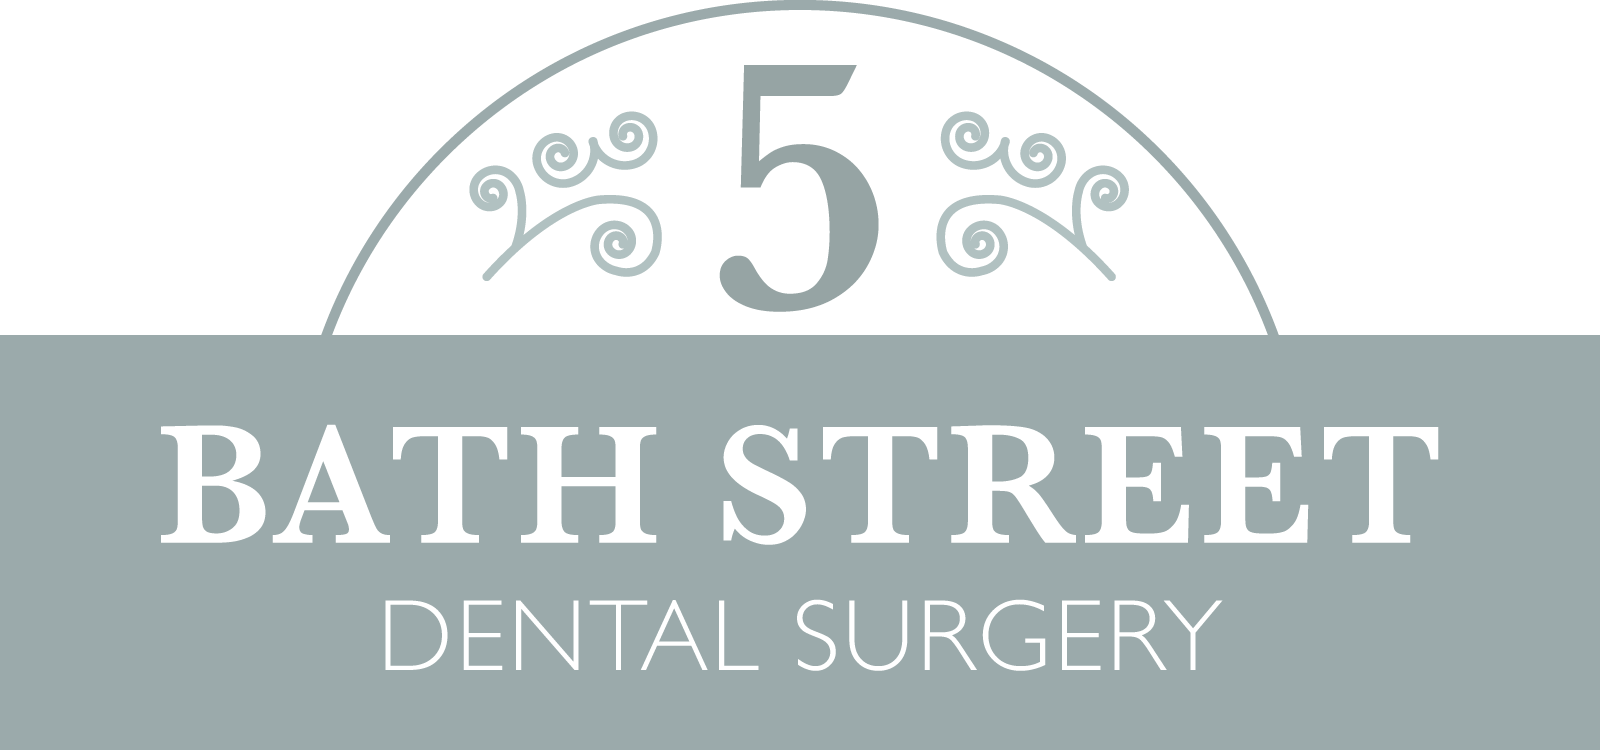 Bath Street Dental Surgery